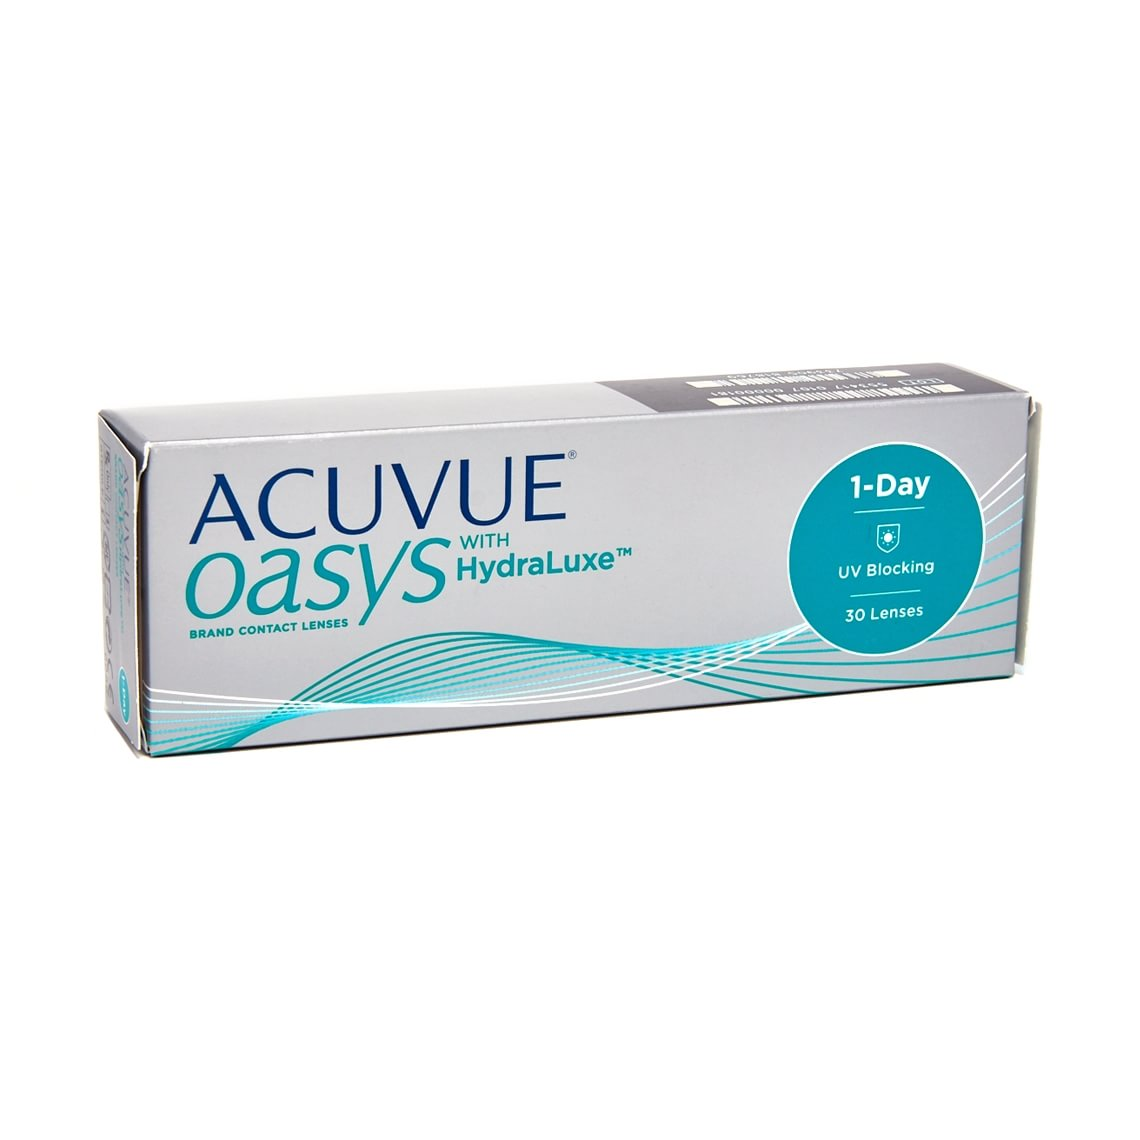 Acuvue Oasys 1-Day with HydraLuxe 30 stk/pakke